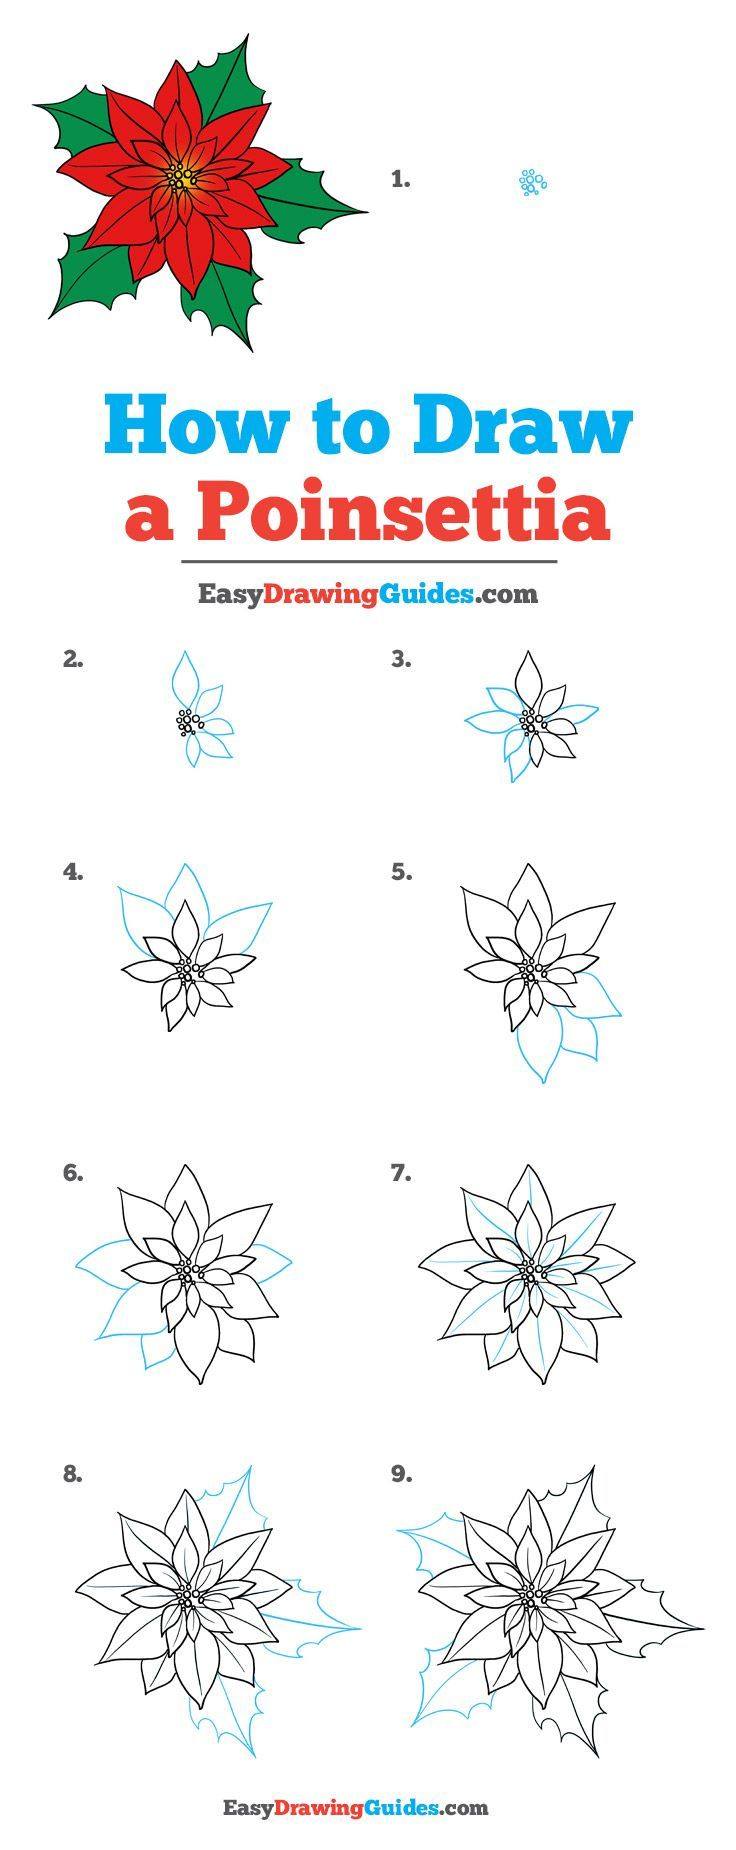 How To Draw A Poinsettia Really Easy Drawing Tutorial Flower Drawing Tutorials Drawing Tutorial Easy Easy Drawings